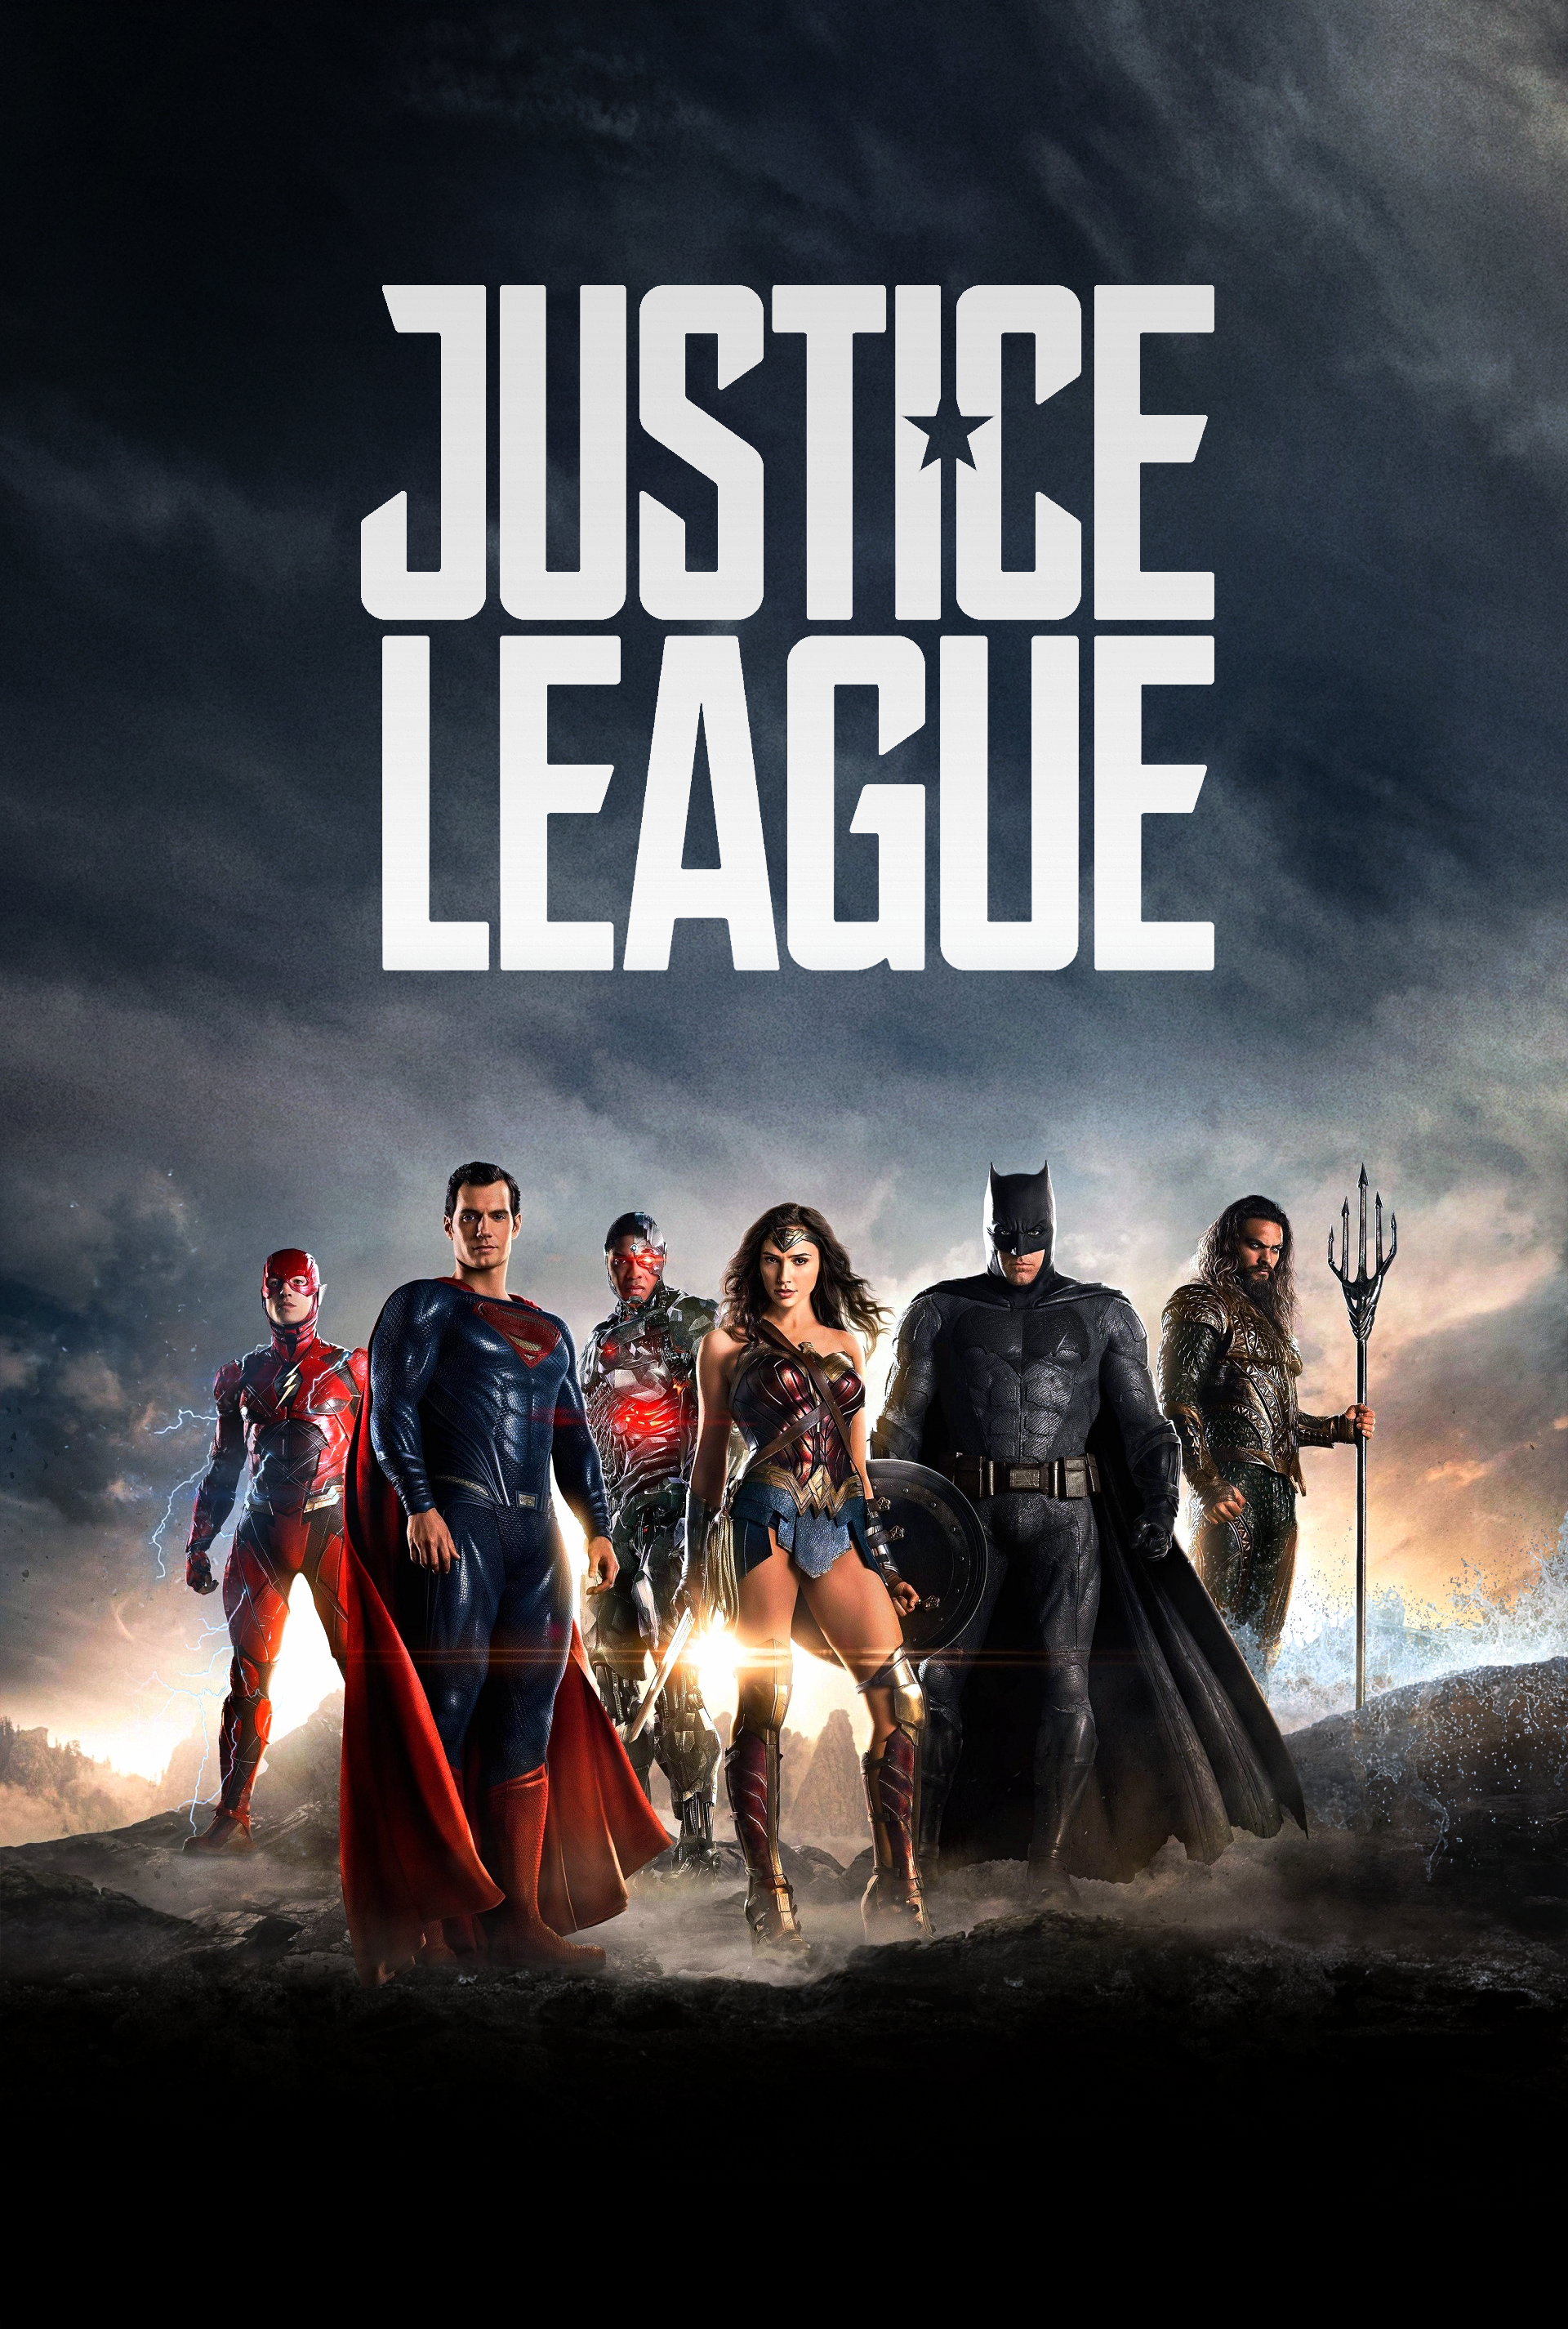 justice_league__2017____poster___1_by_camw1n-dab9vpk.png